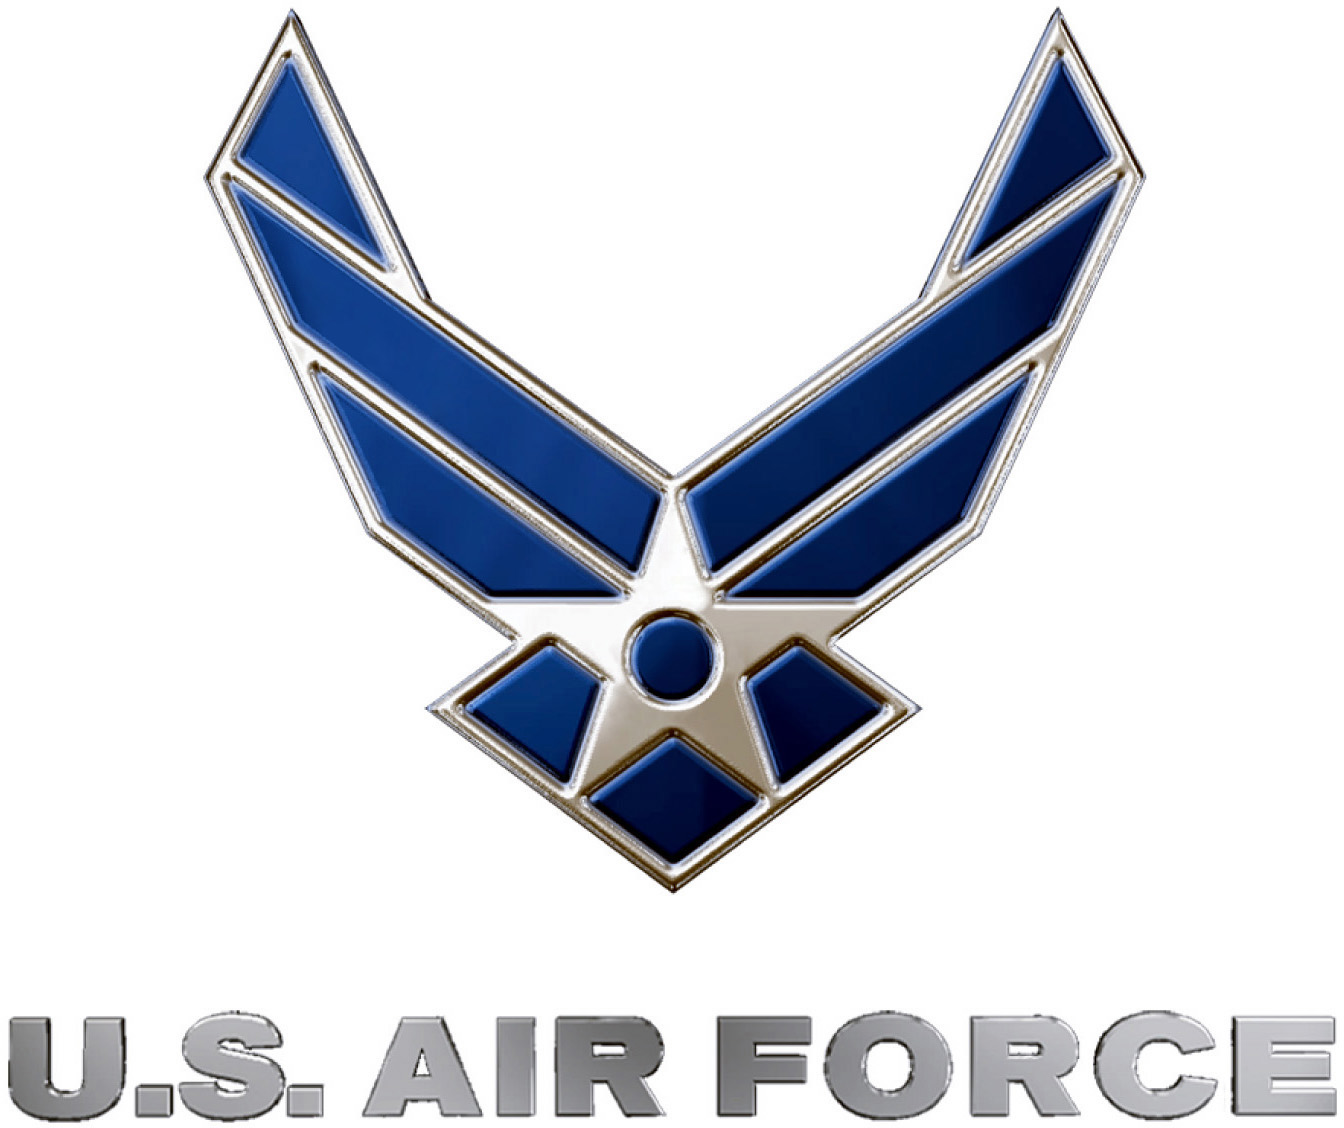 Air force logo Wallpaper